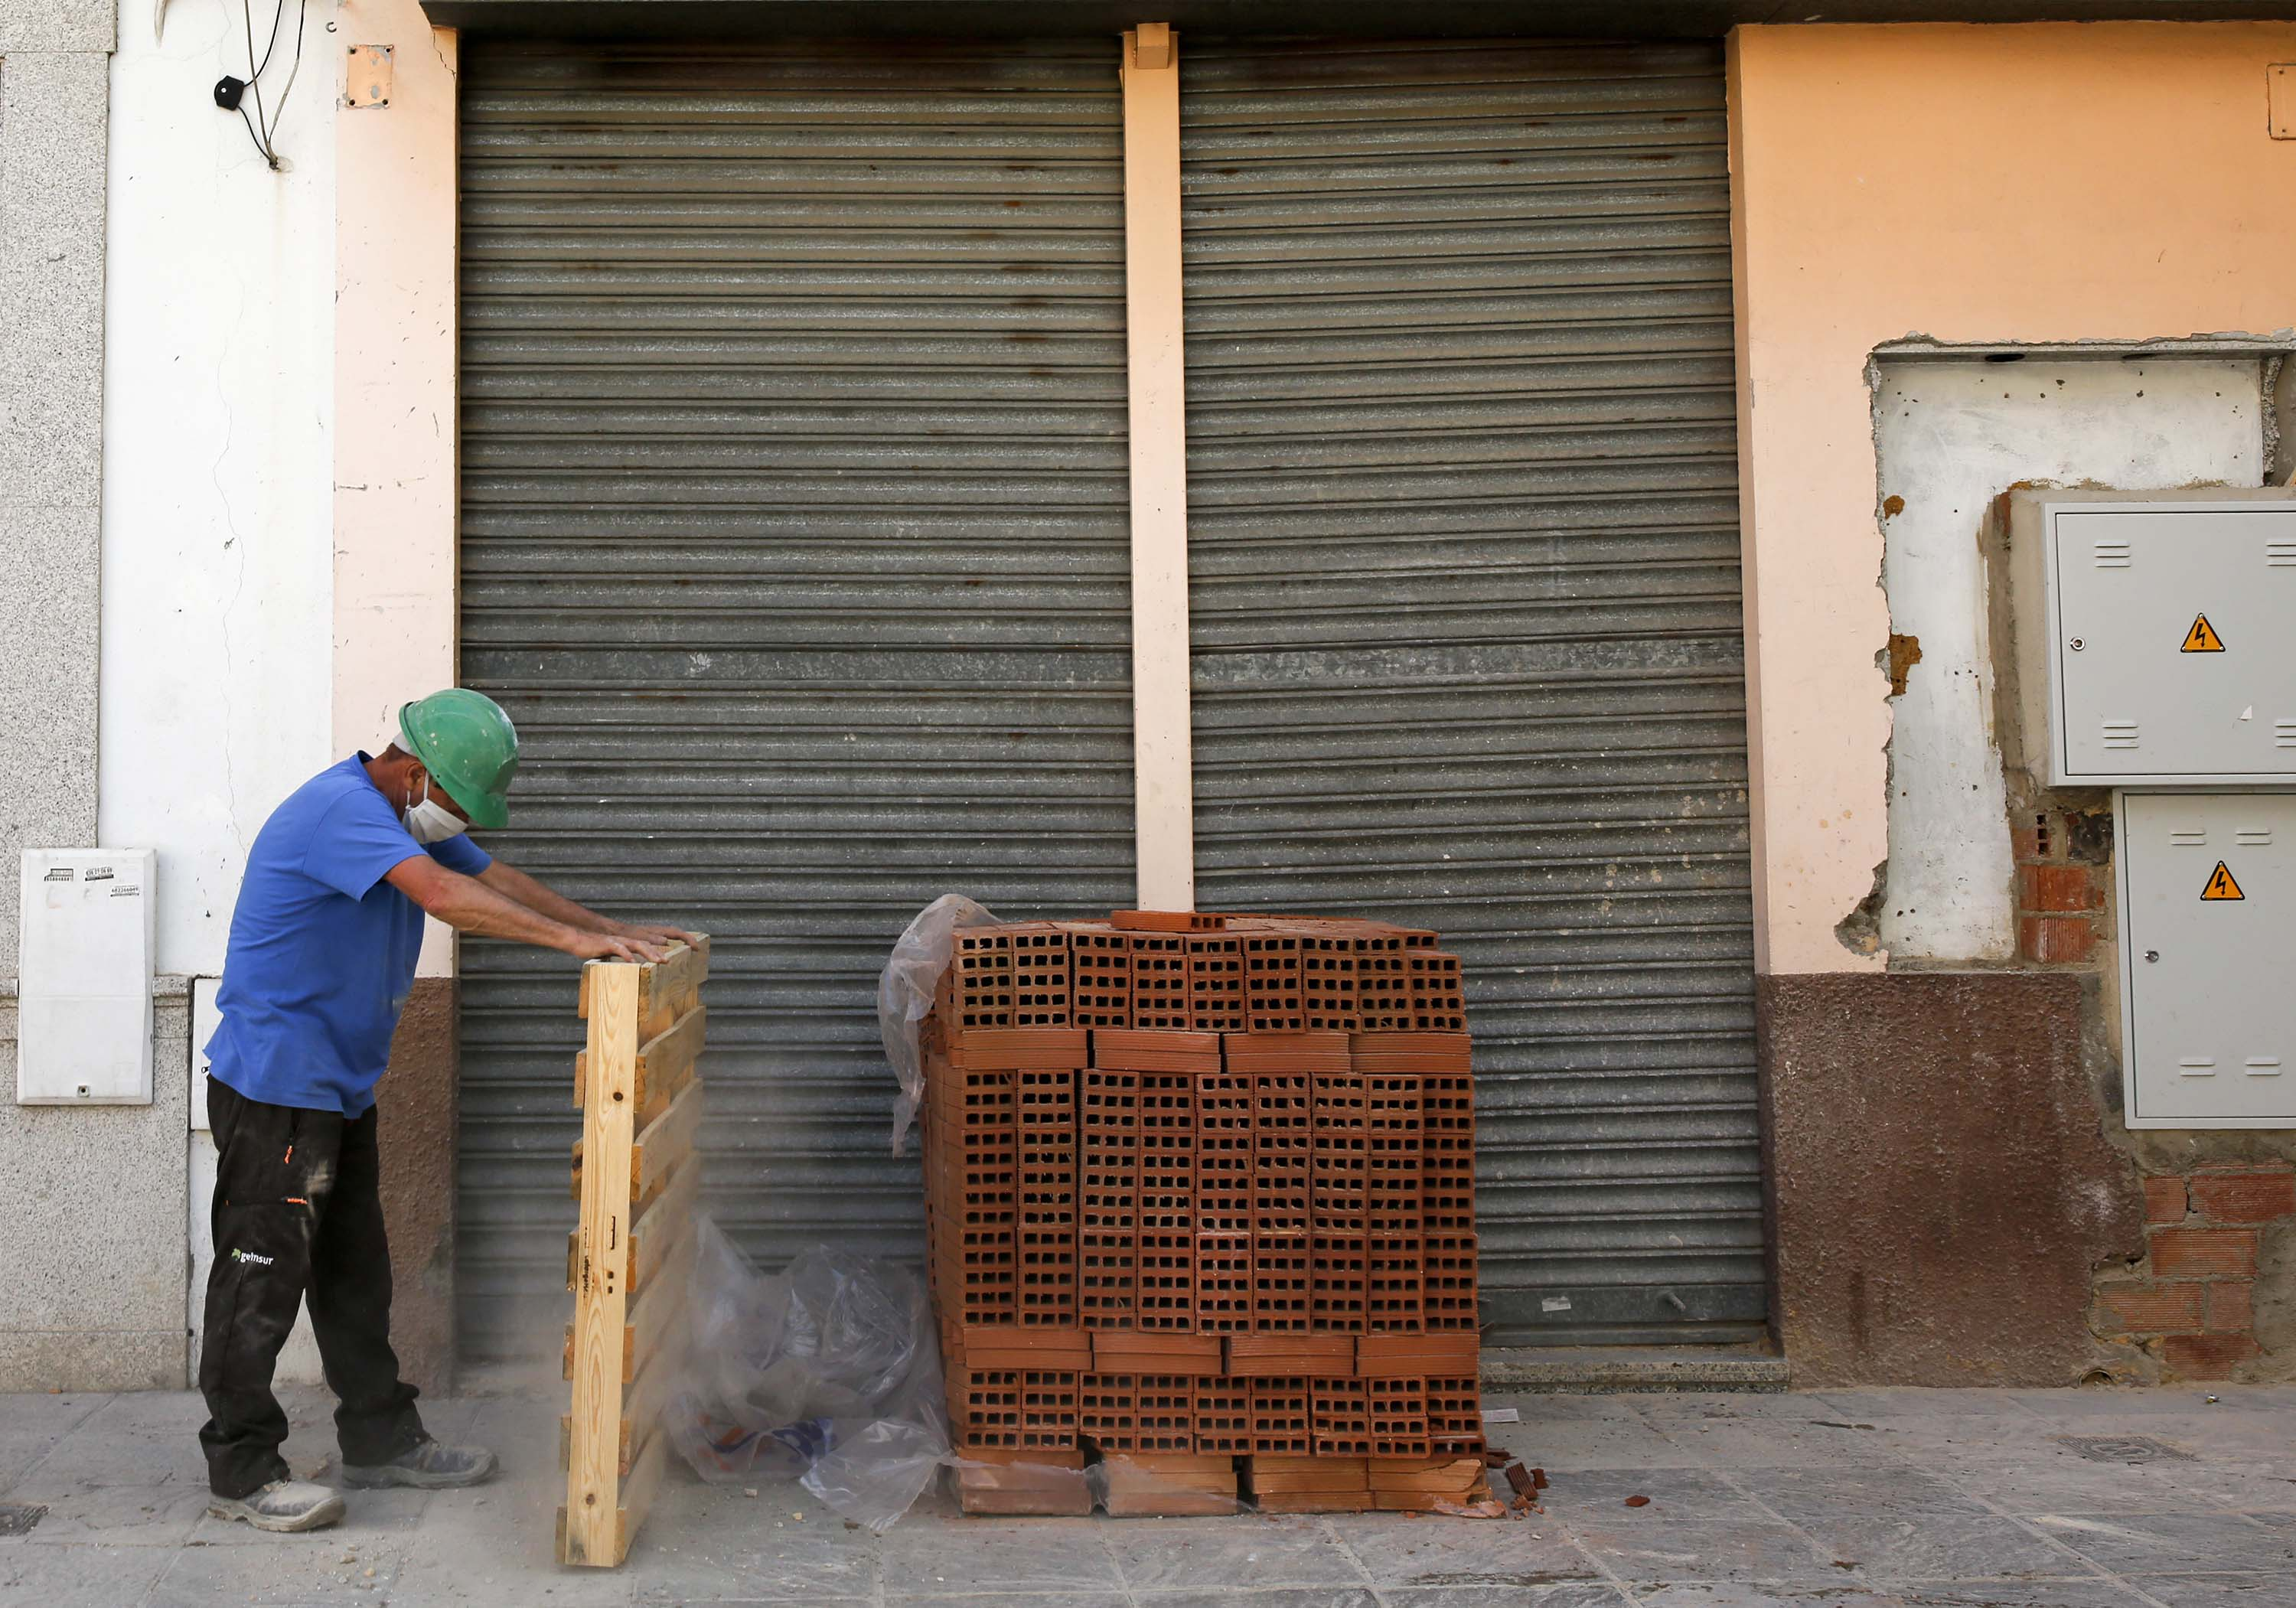 A bricklayer works at a construction site in Seville, Spain on May 8.